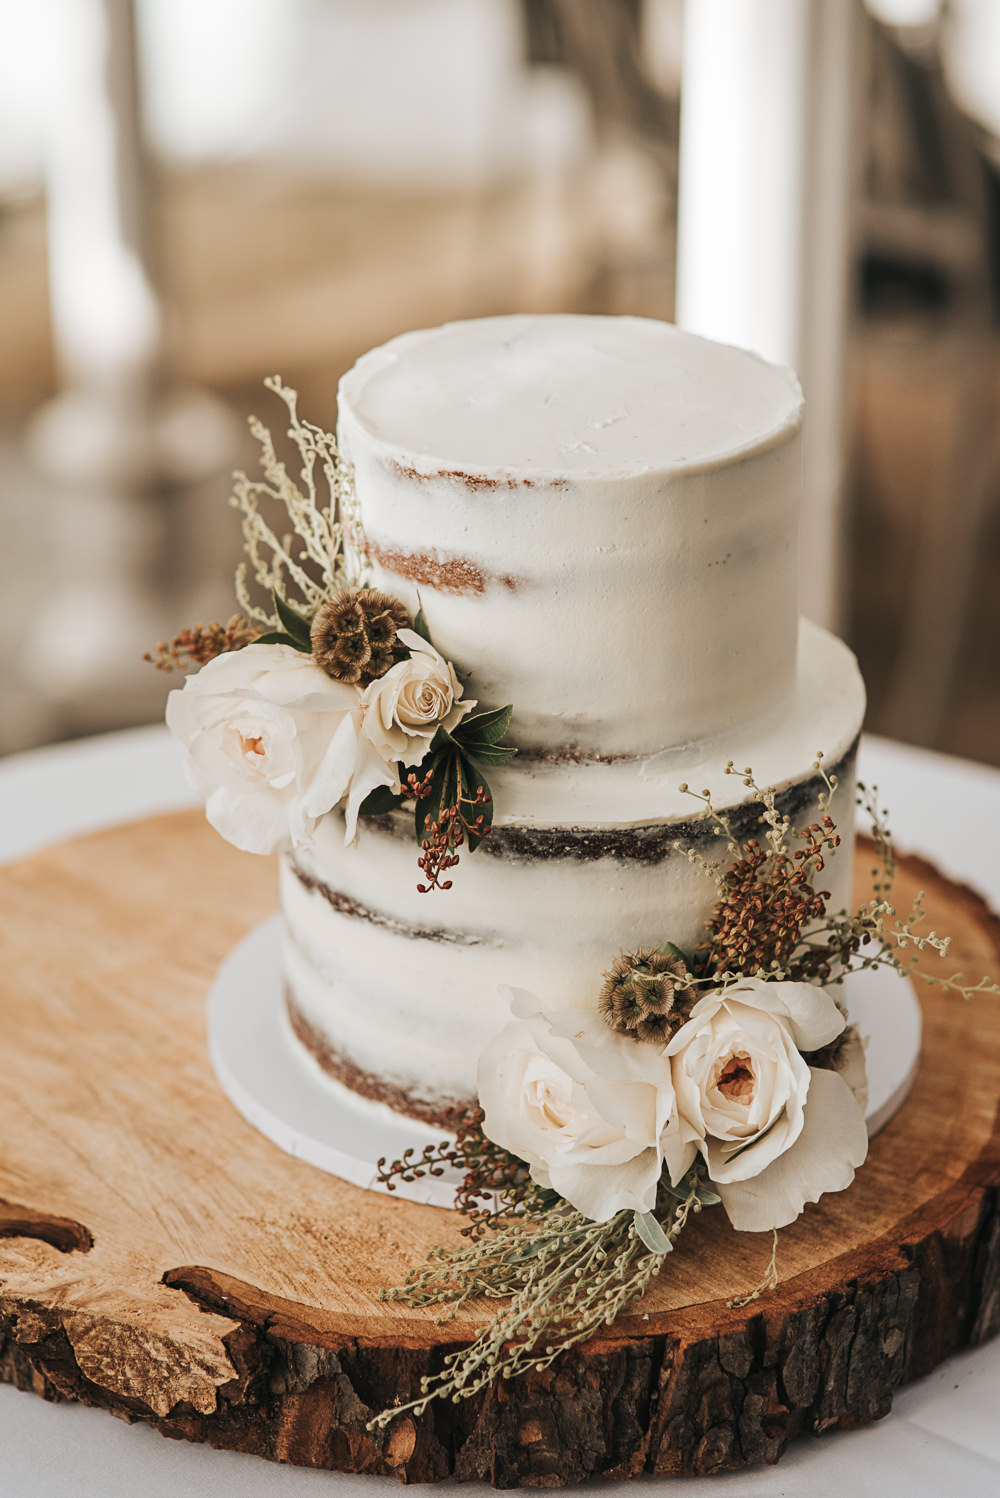 Semi Naked Cake Buttercream Flowers Log Slice Stand Wollaton Hall Wedding Pear and Bear Photography